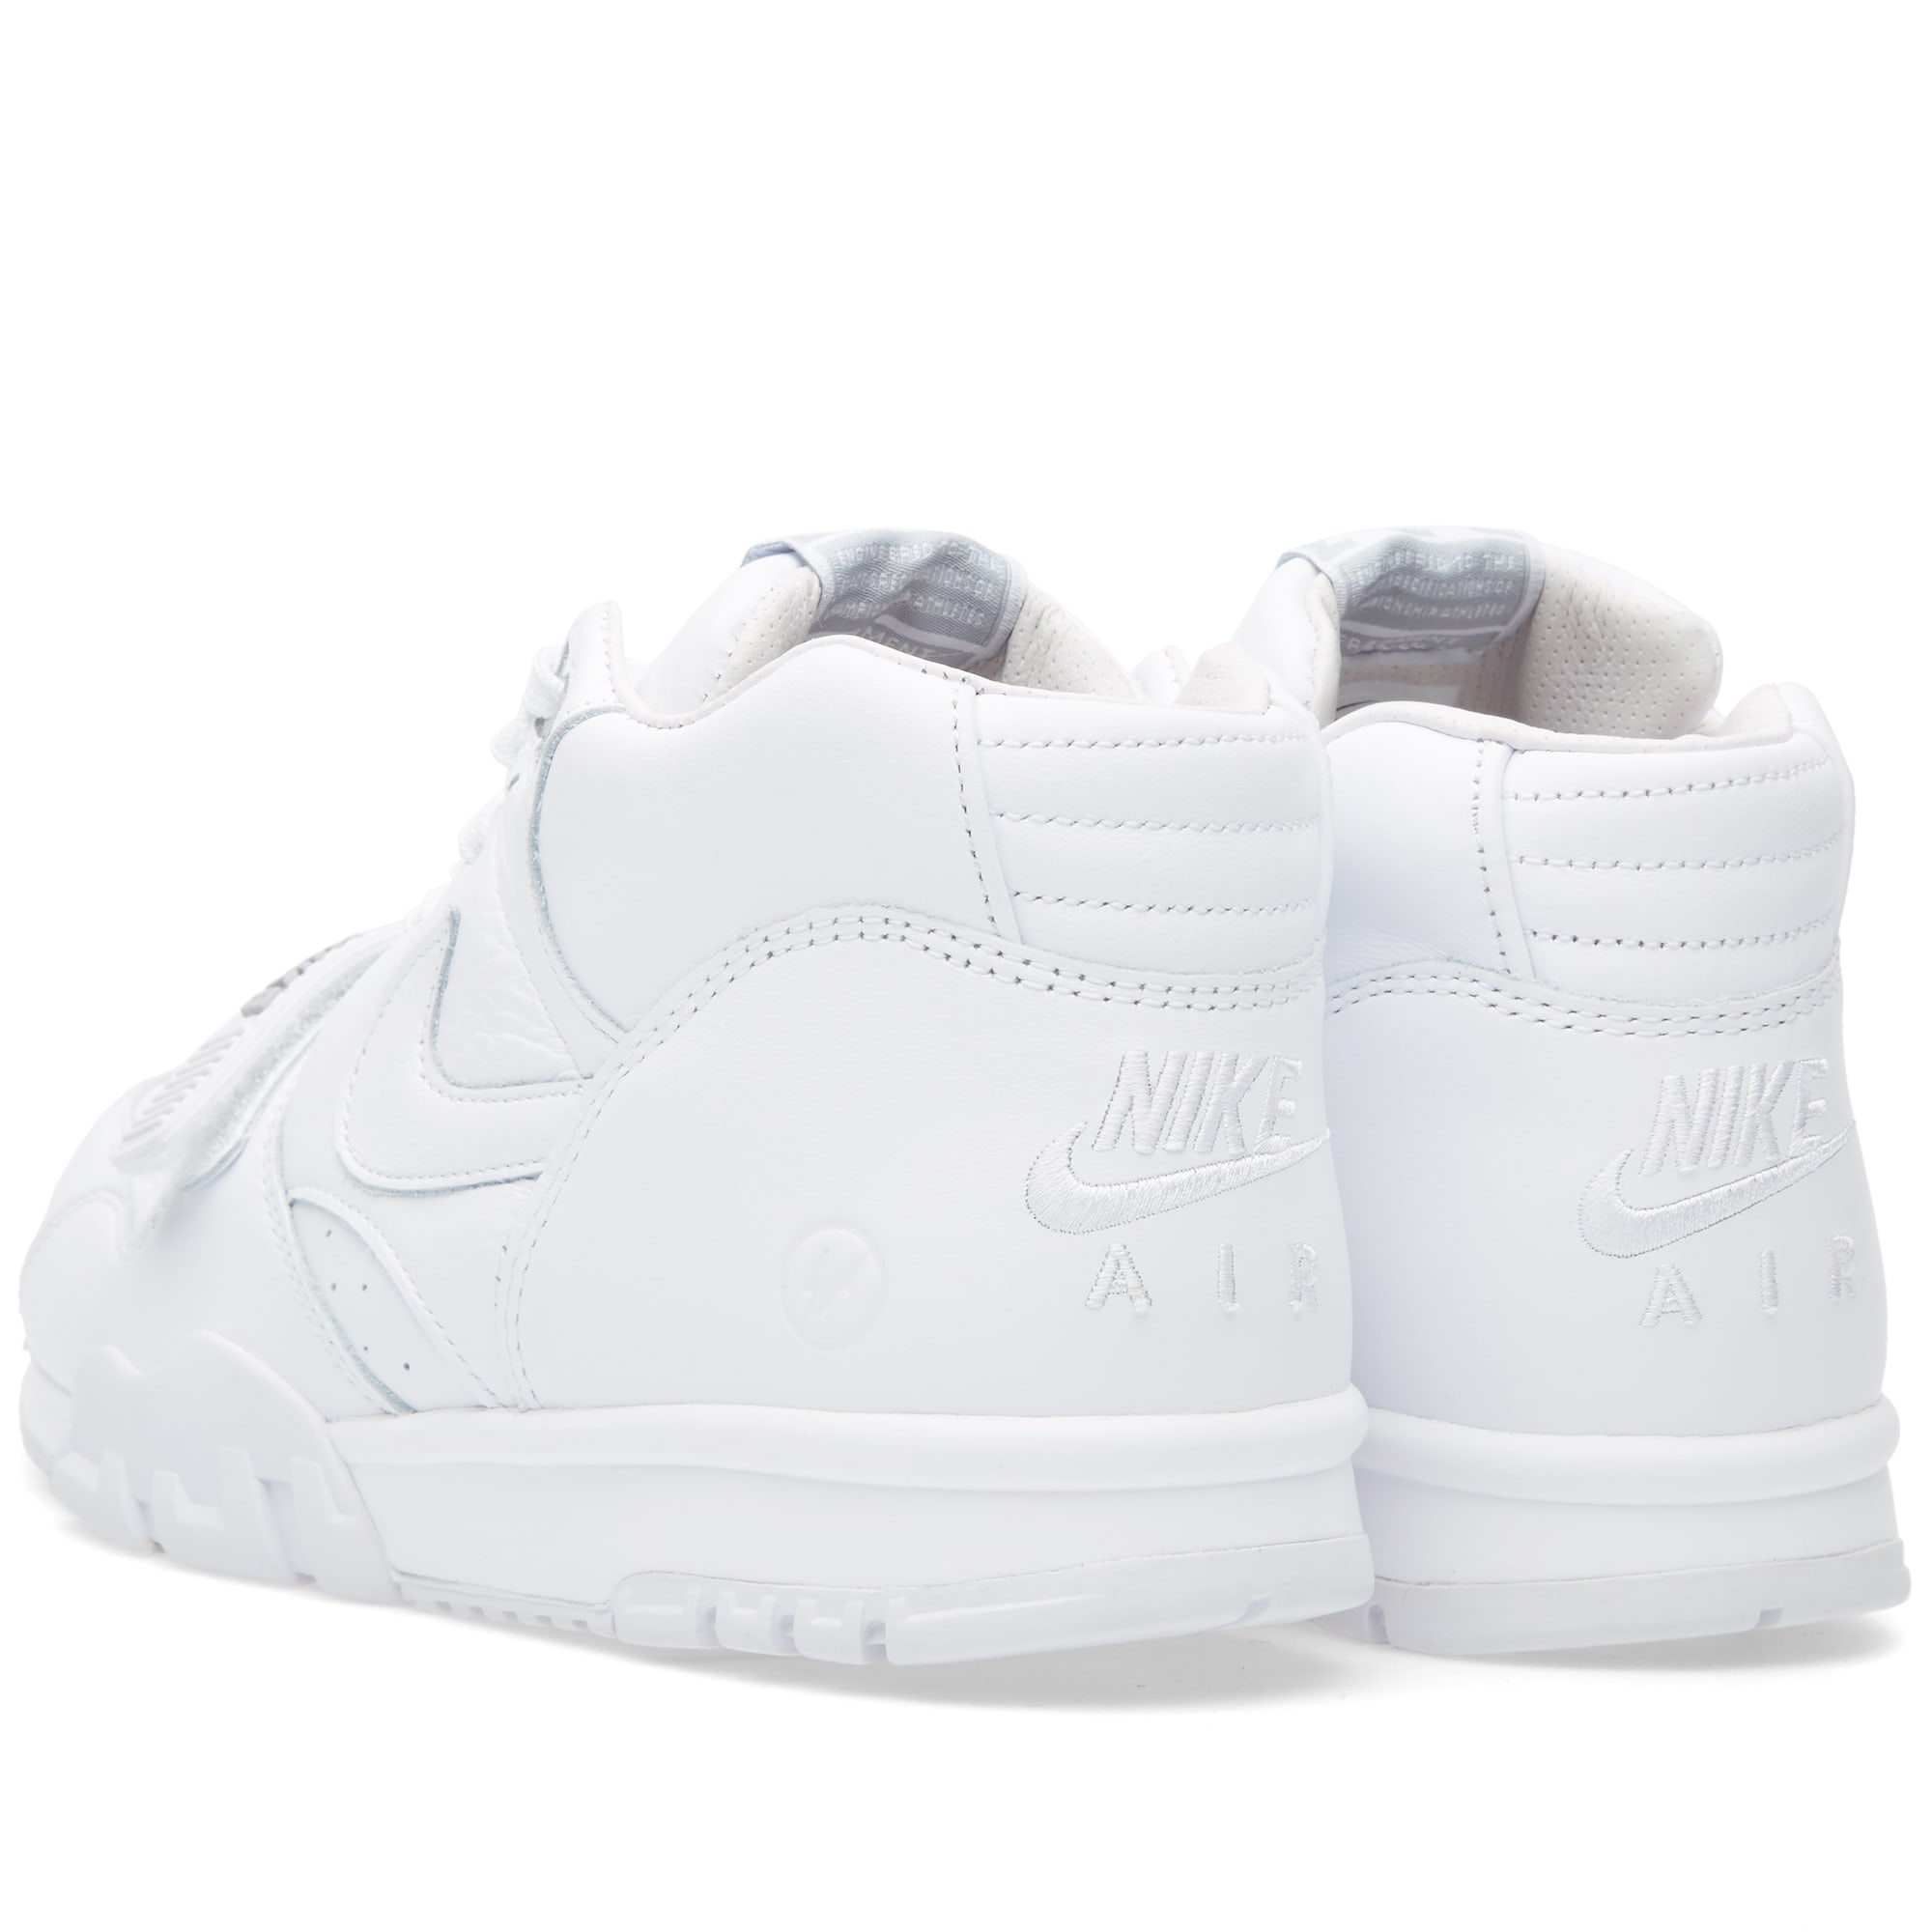 new product e953a 4fdd3 Nike x Fragment Design Air Trainer 1 Mid SP